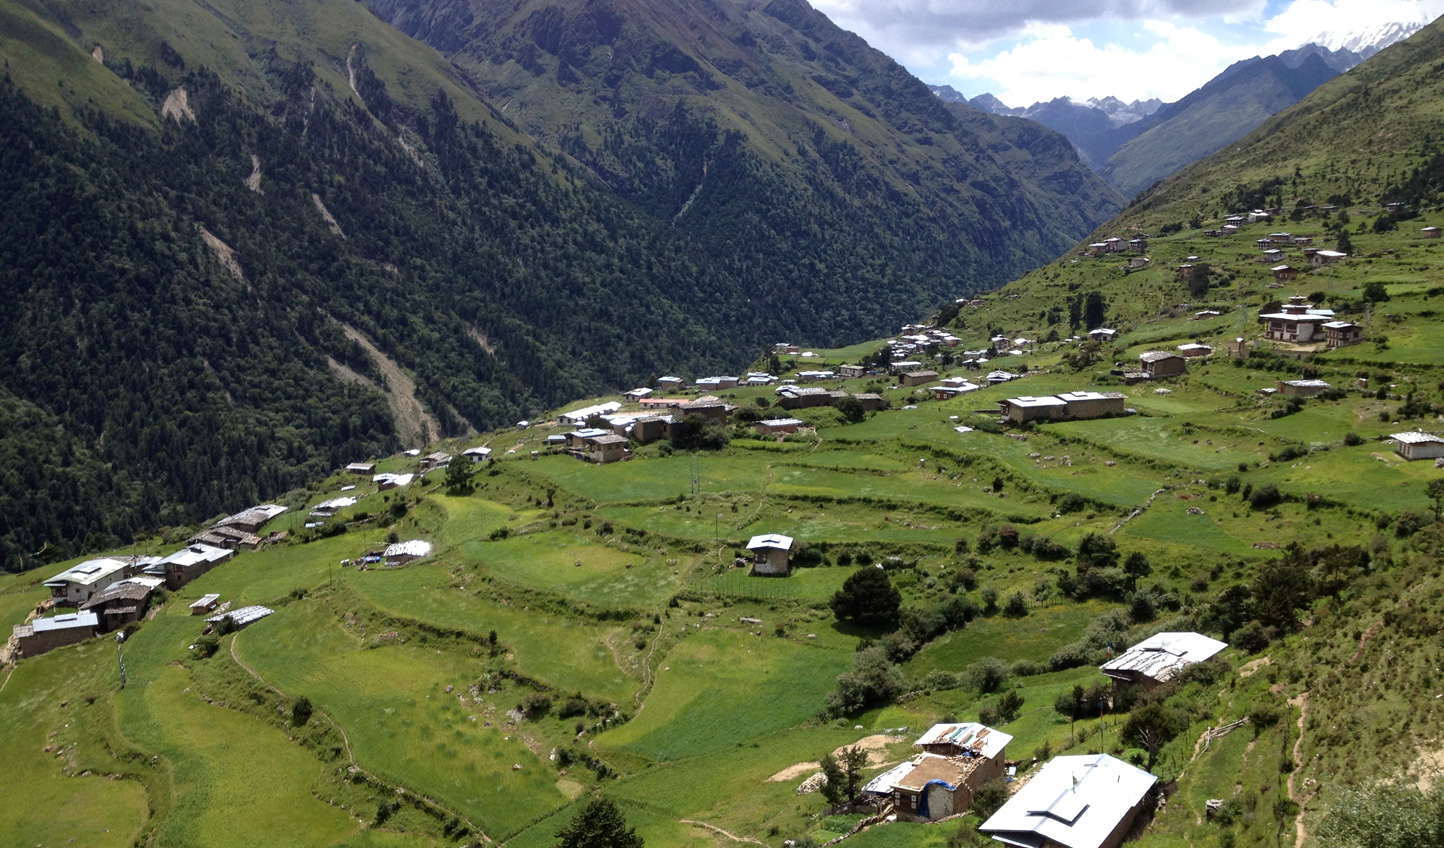 Hike into the remote village of Laya